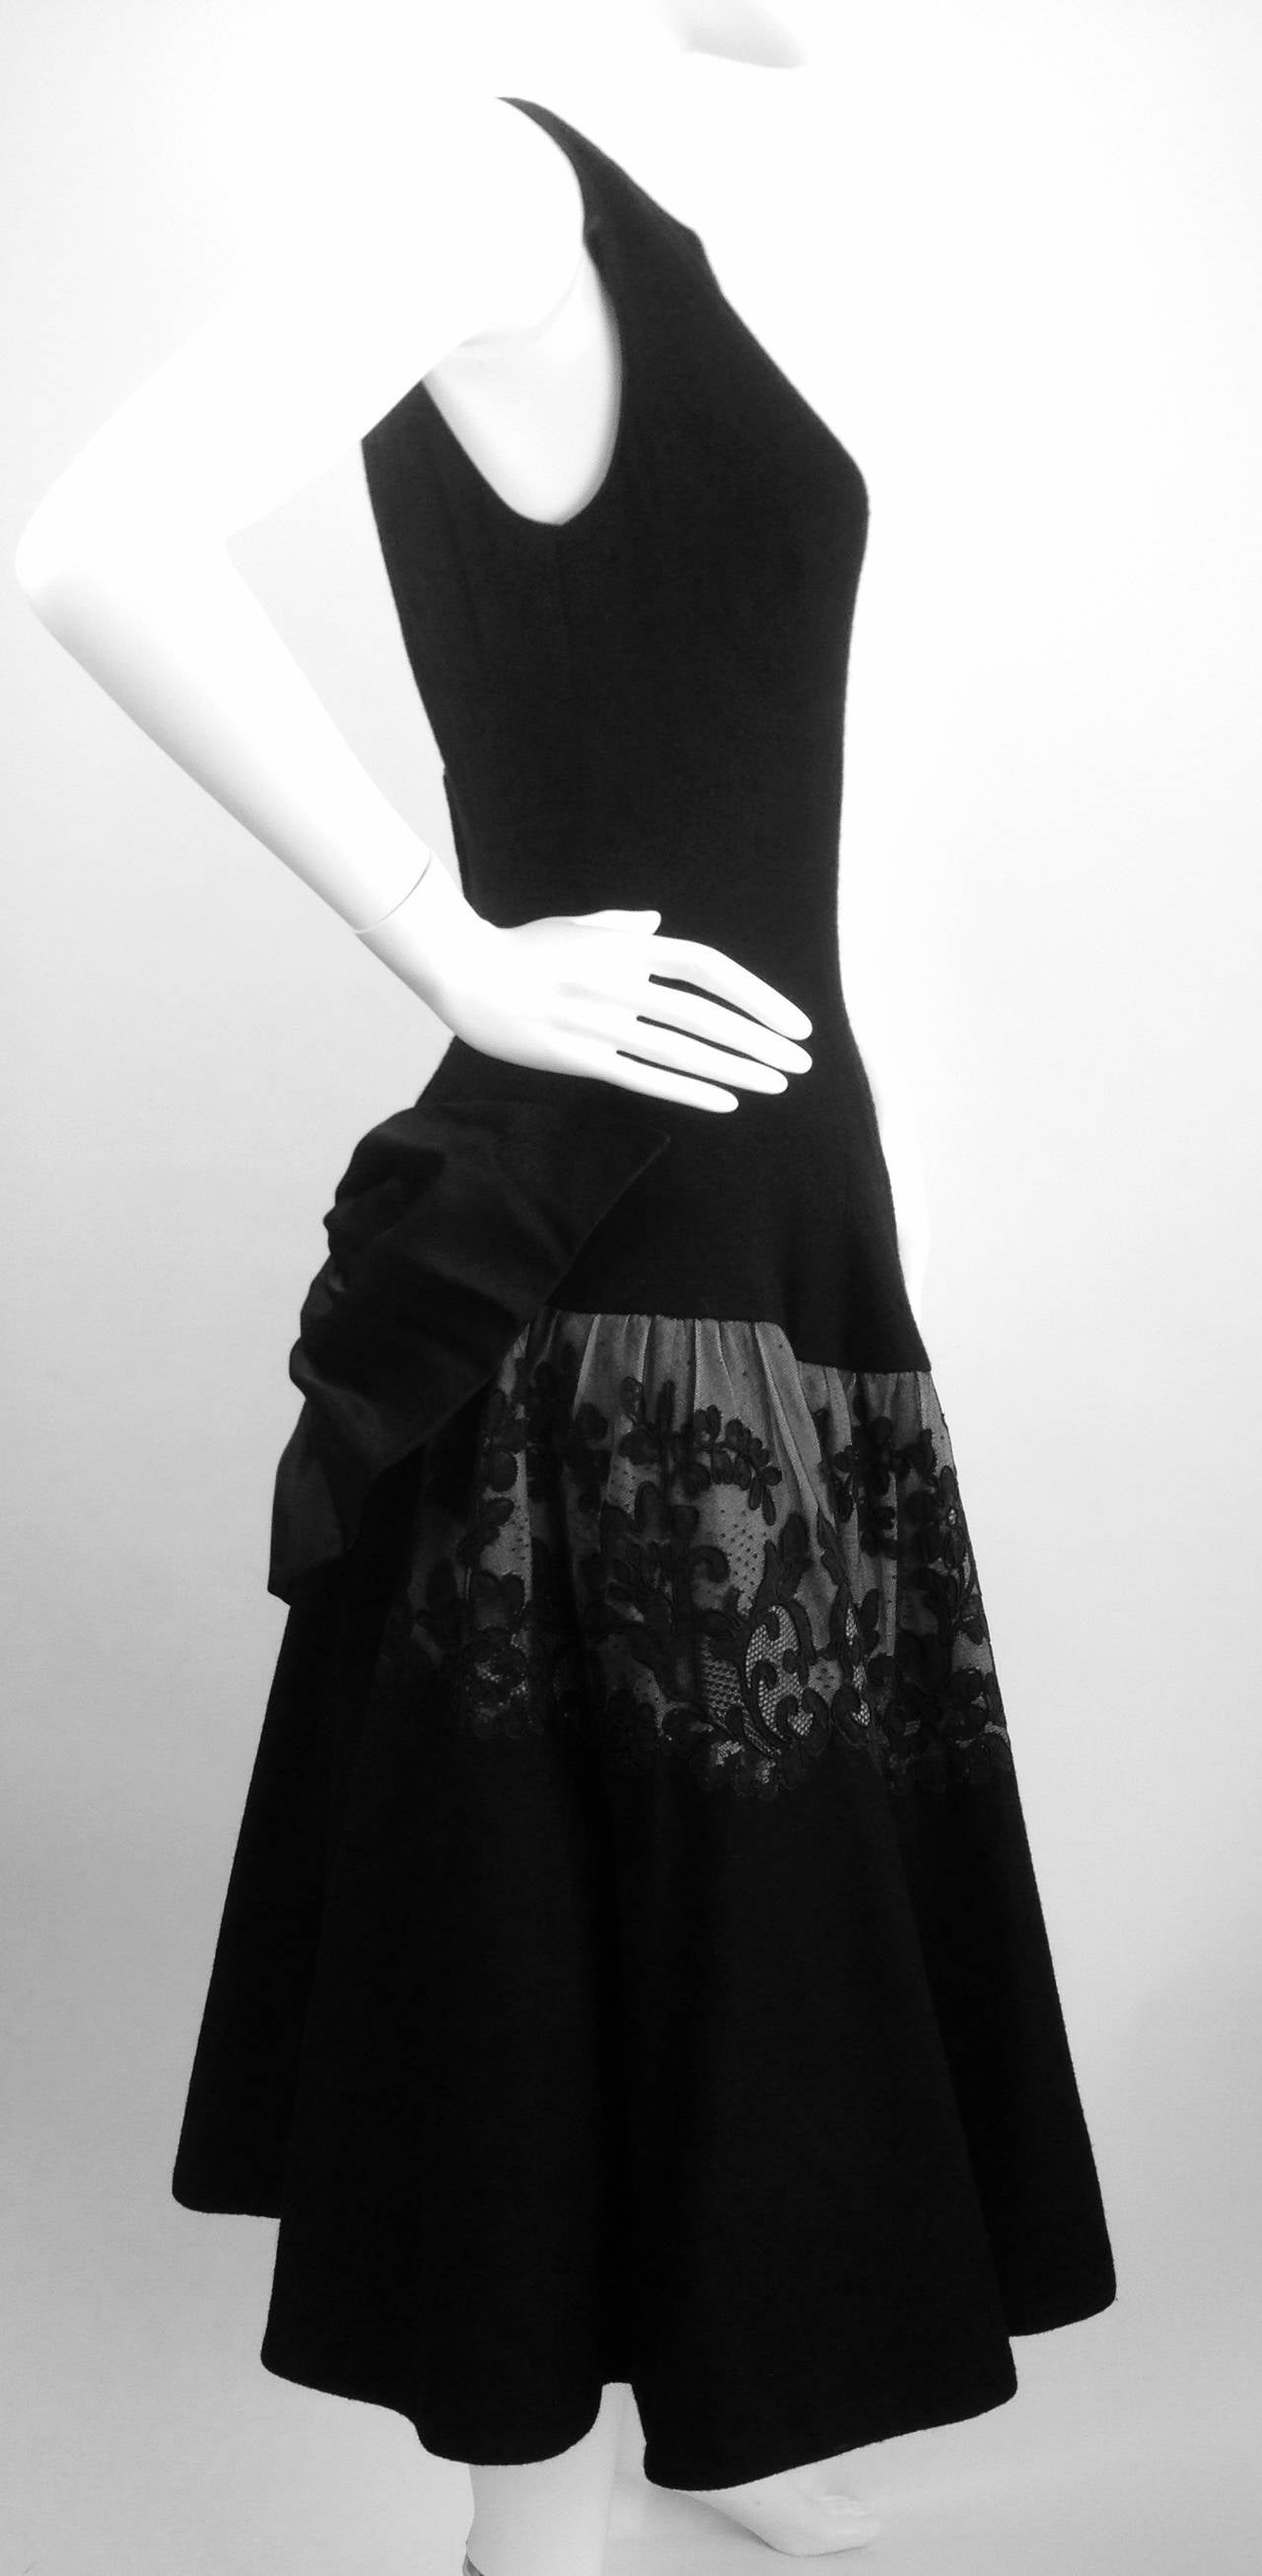 1950s Mr. Blackwell Black Wool Dress In Excellent Condition For Sale In Houston, TX